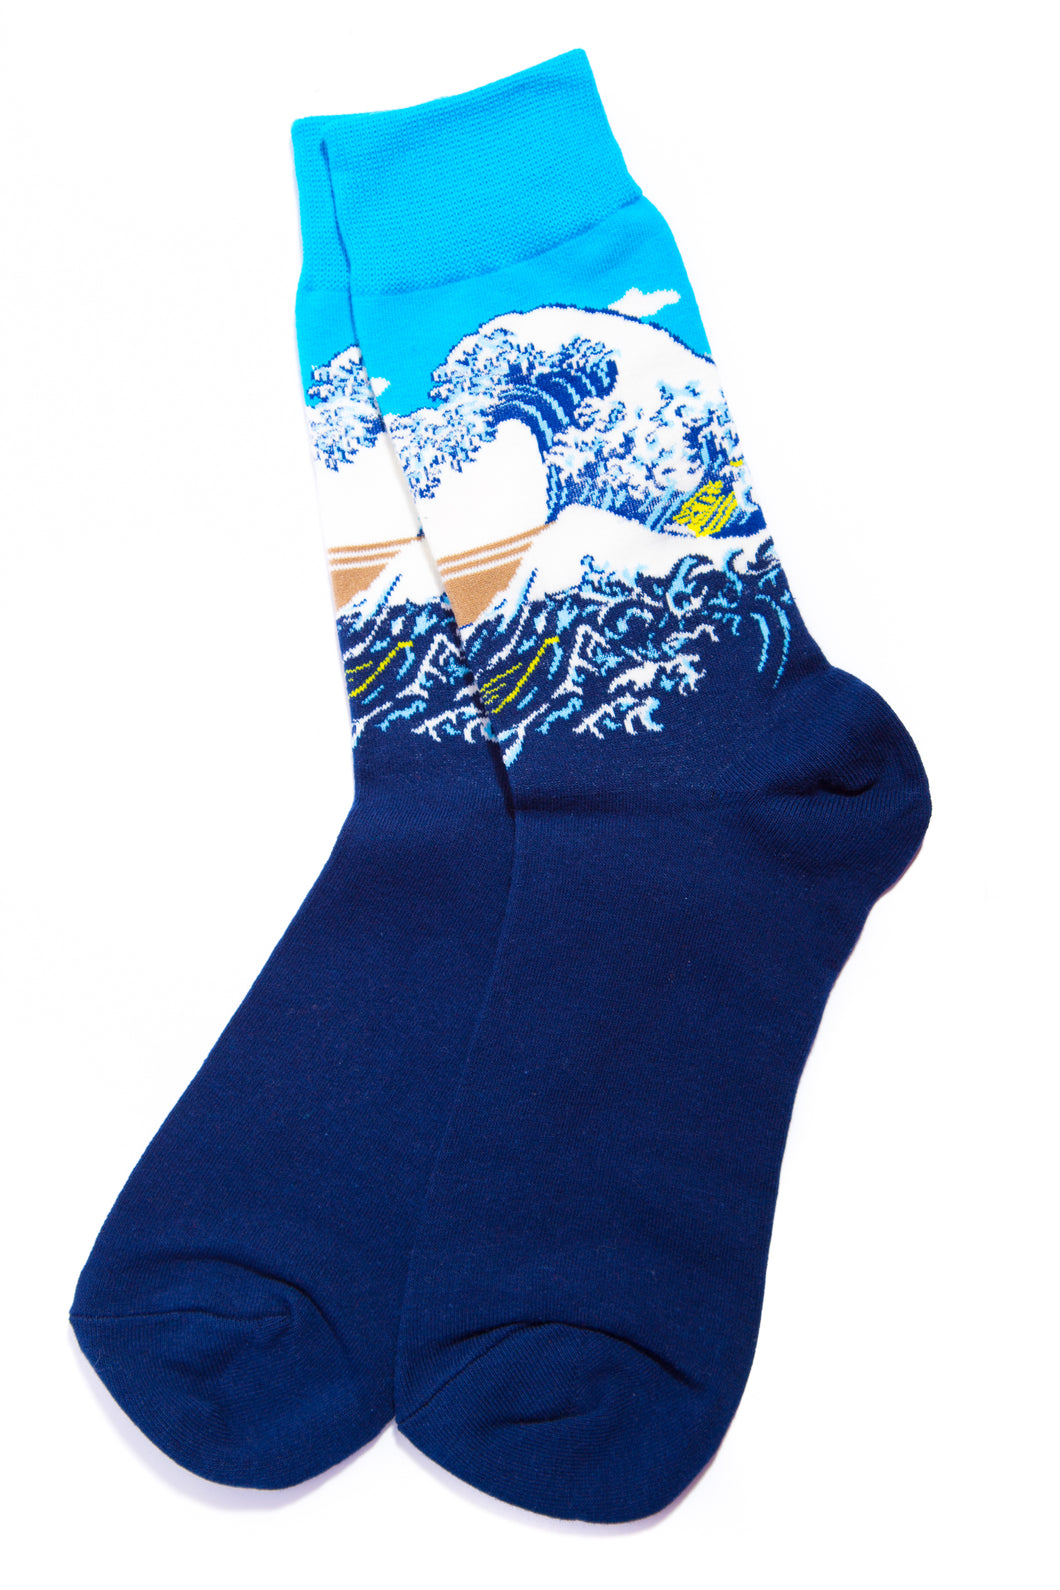 the great wave artwork socks